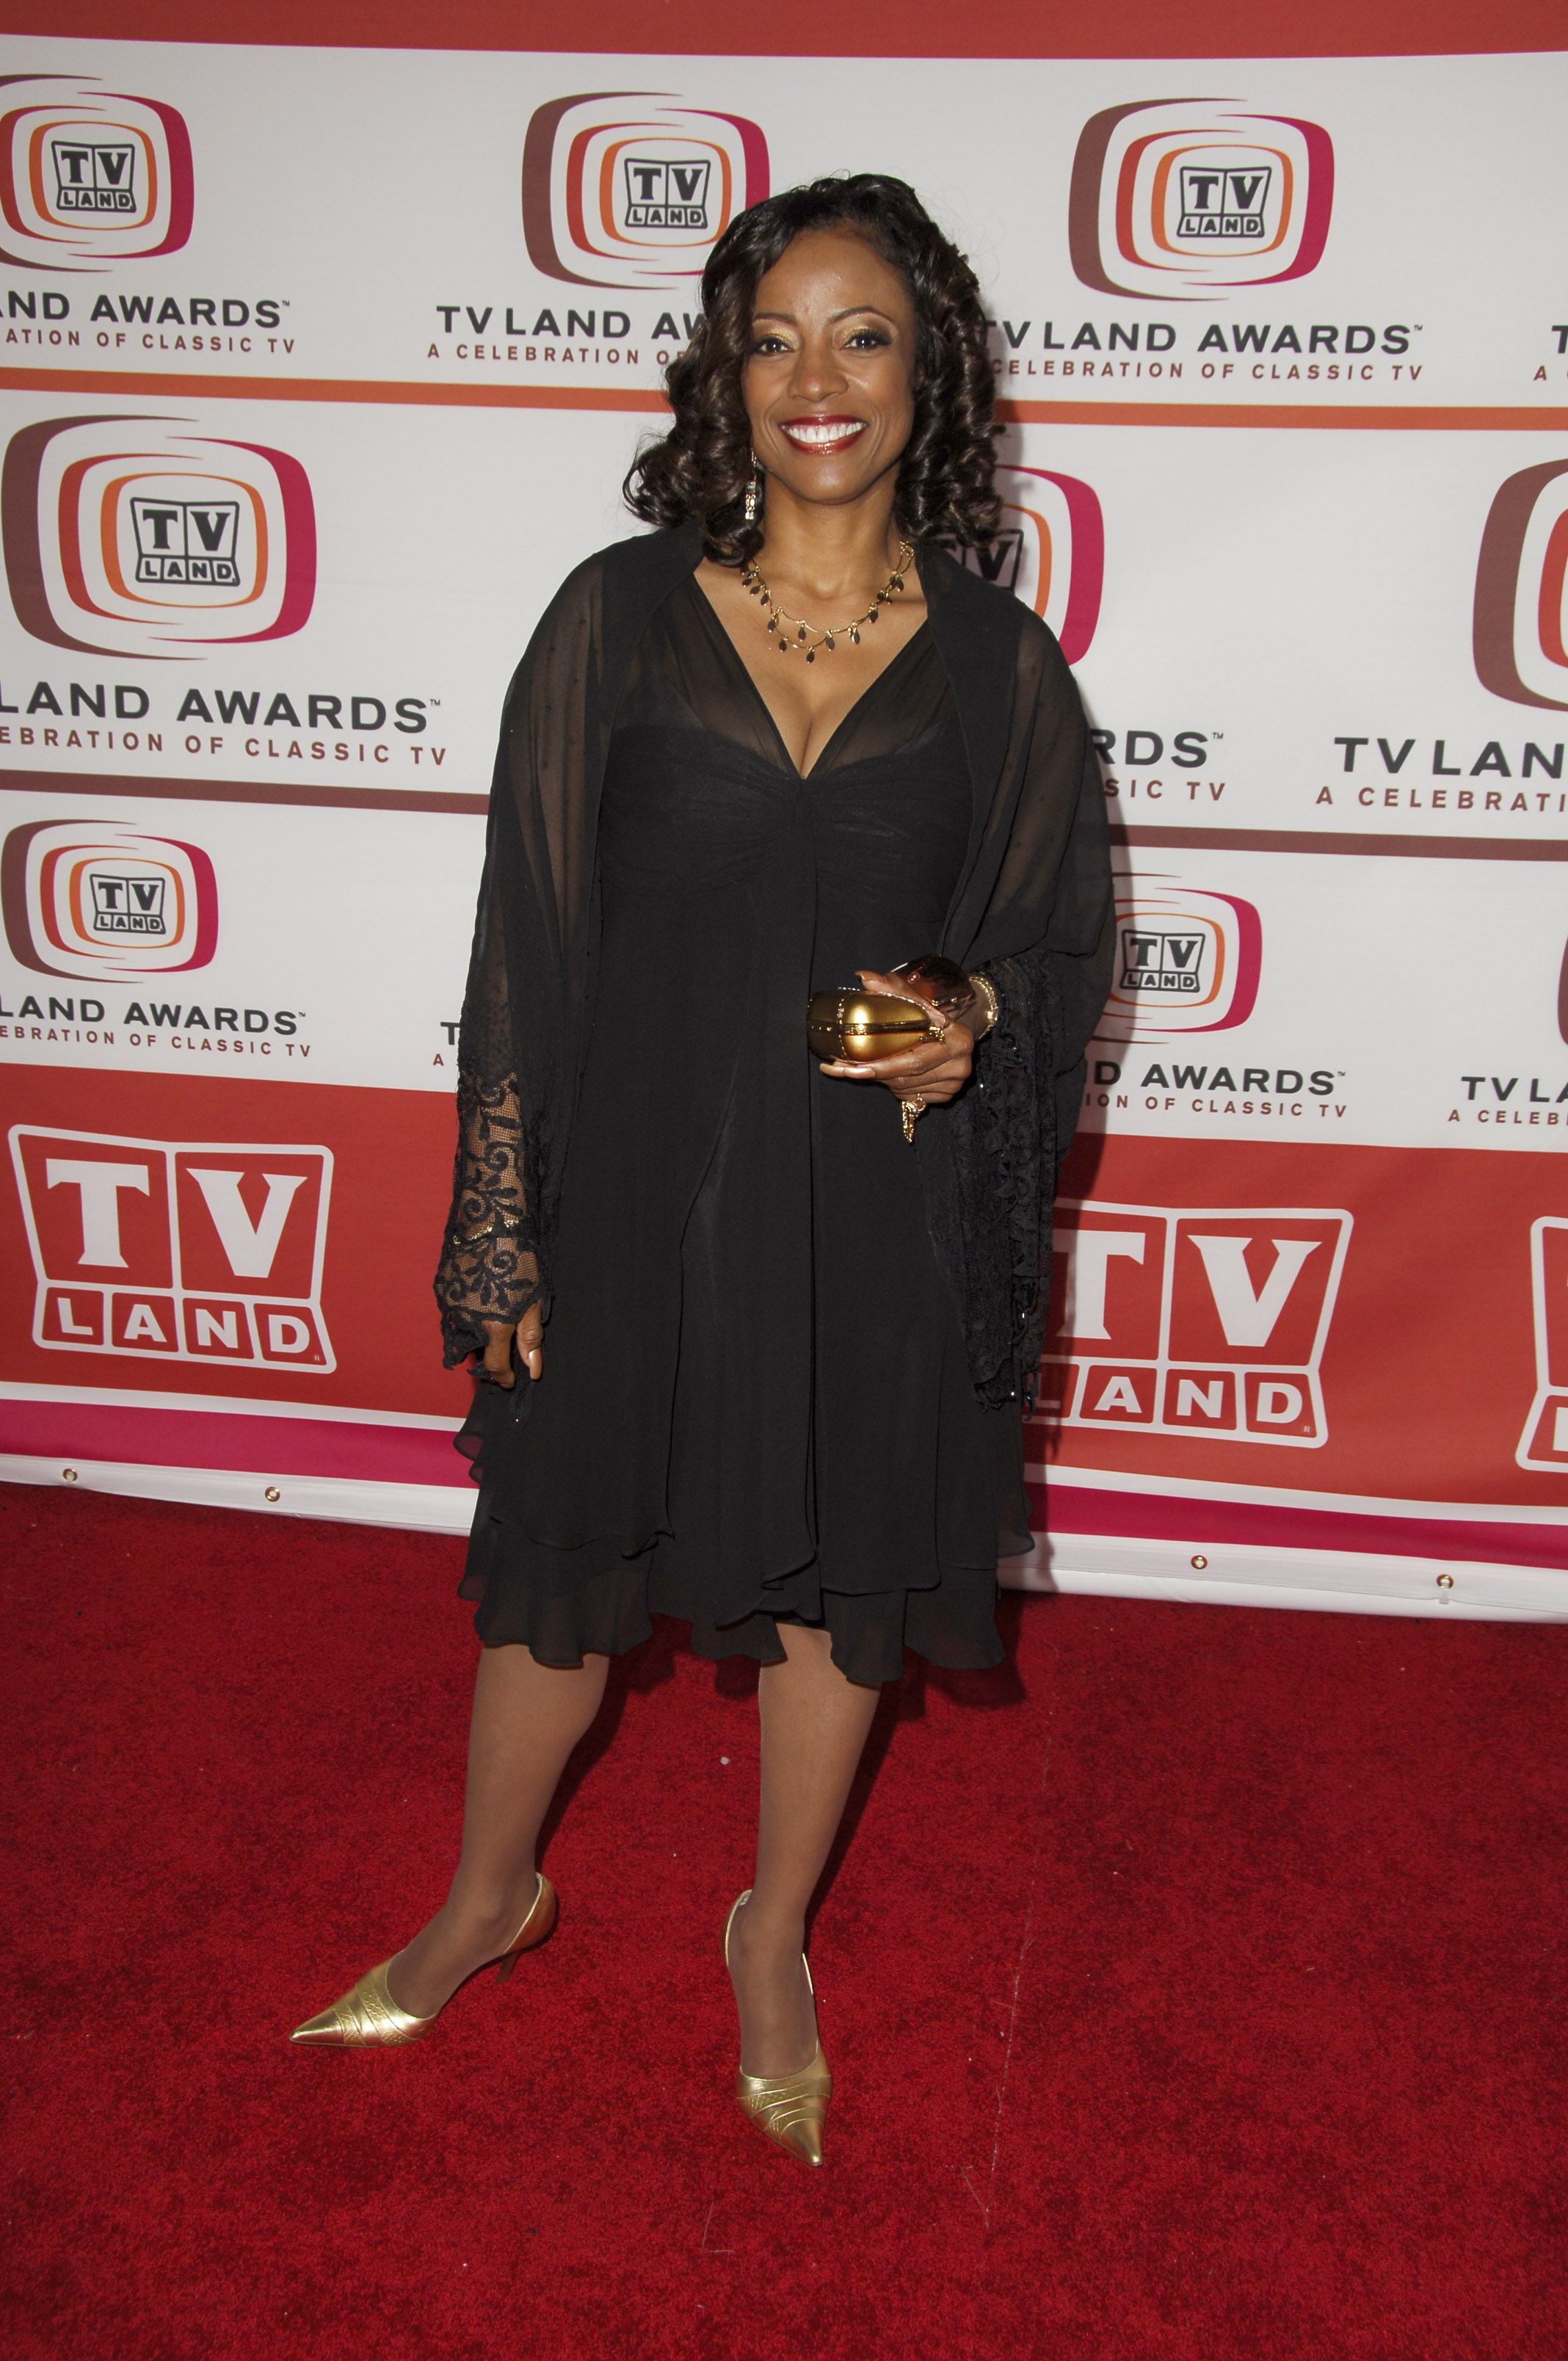 BernNadette Stanis at the 4th Annual TV Land Awards - Arrivals at Barker Hangar in Santa Monica on  March 19, 2006   Photo: Getty Images